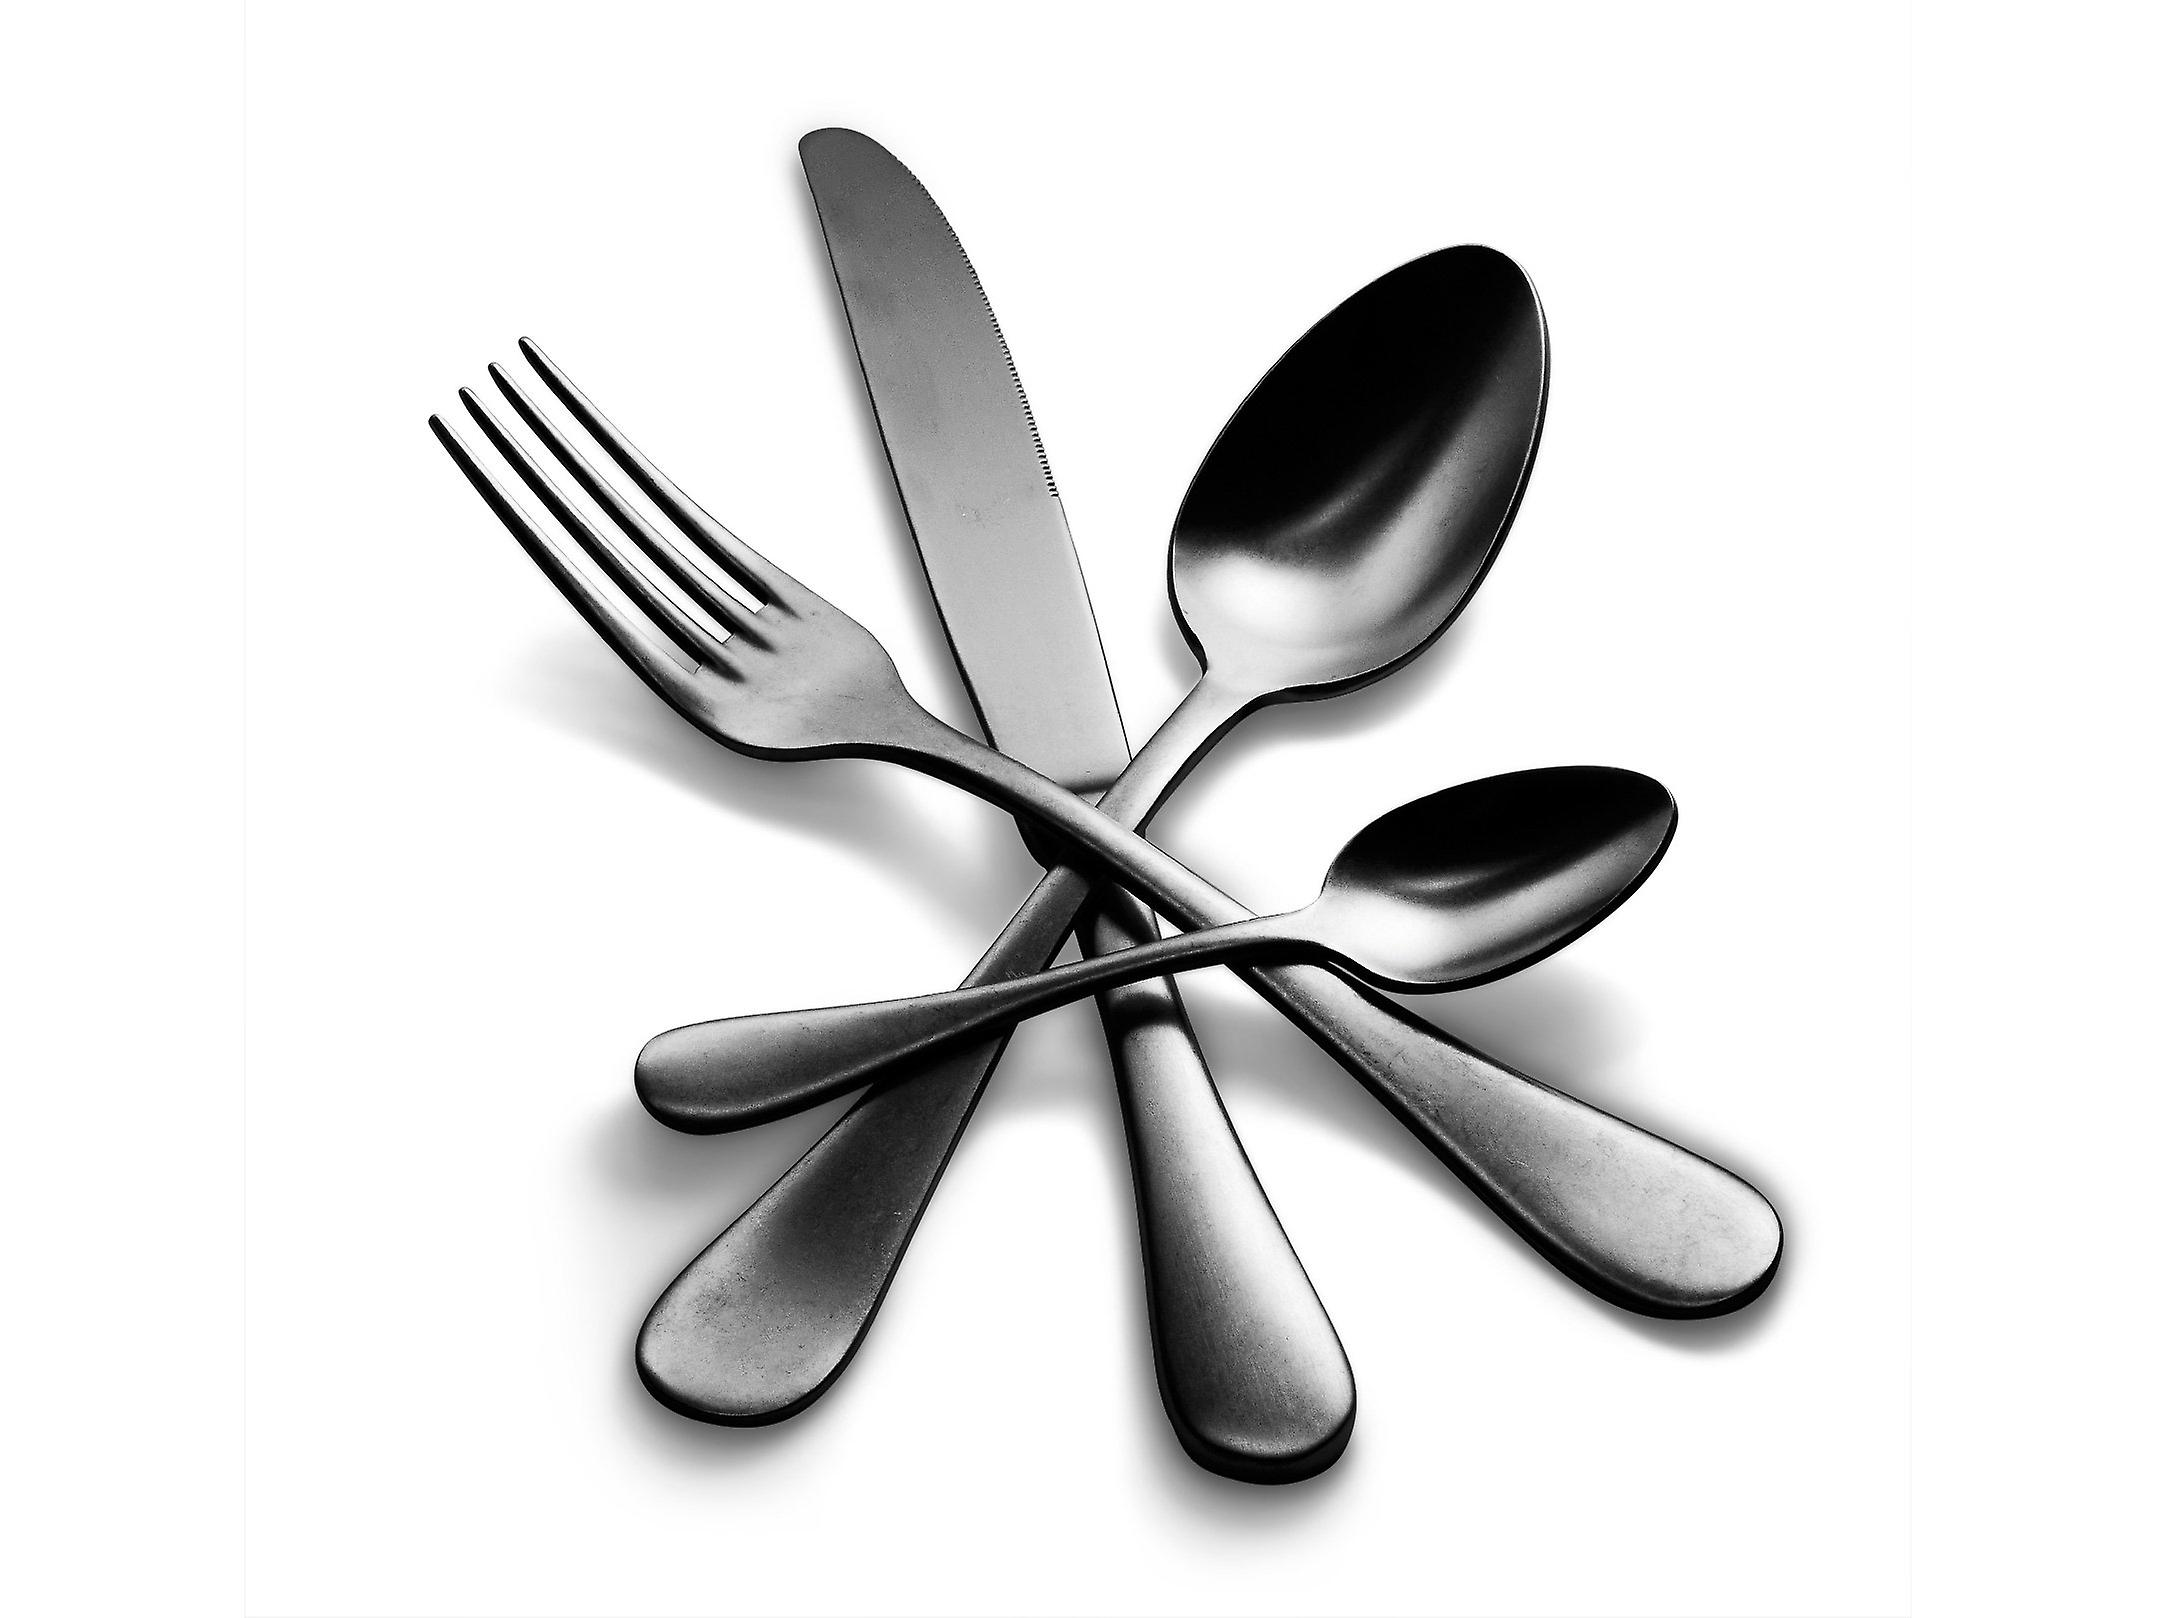 Mepra Michelangelo Vintage 5 pcs flatware set